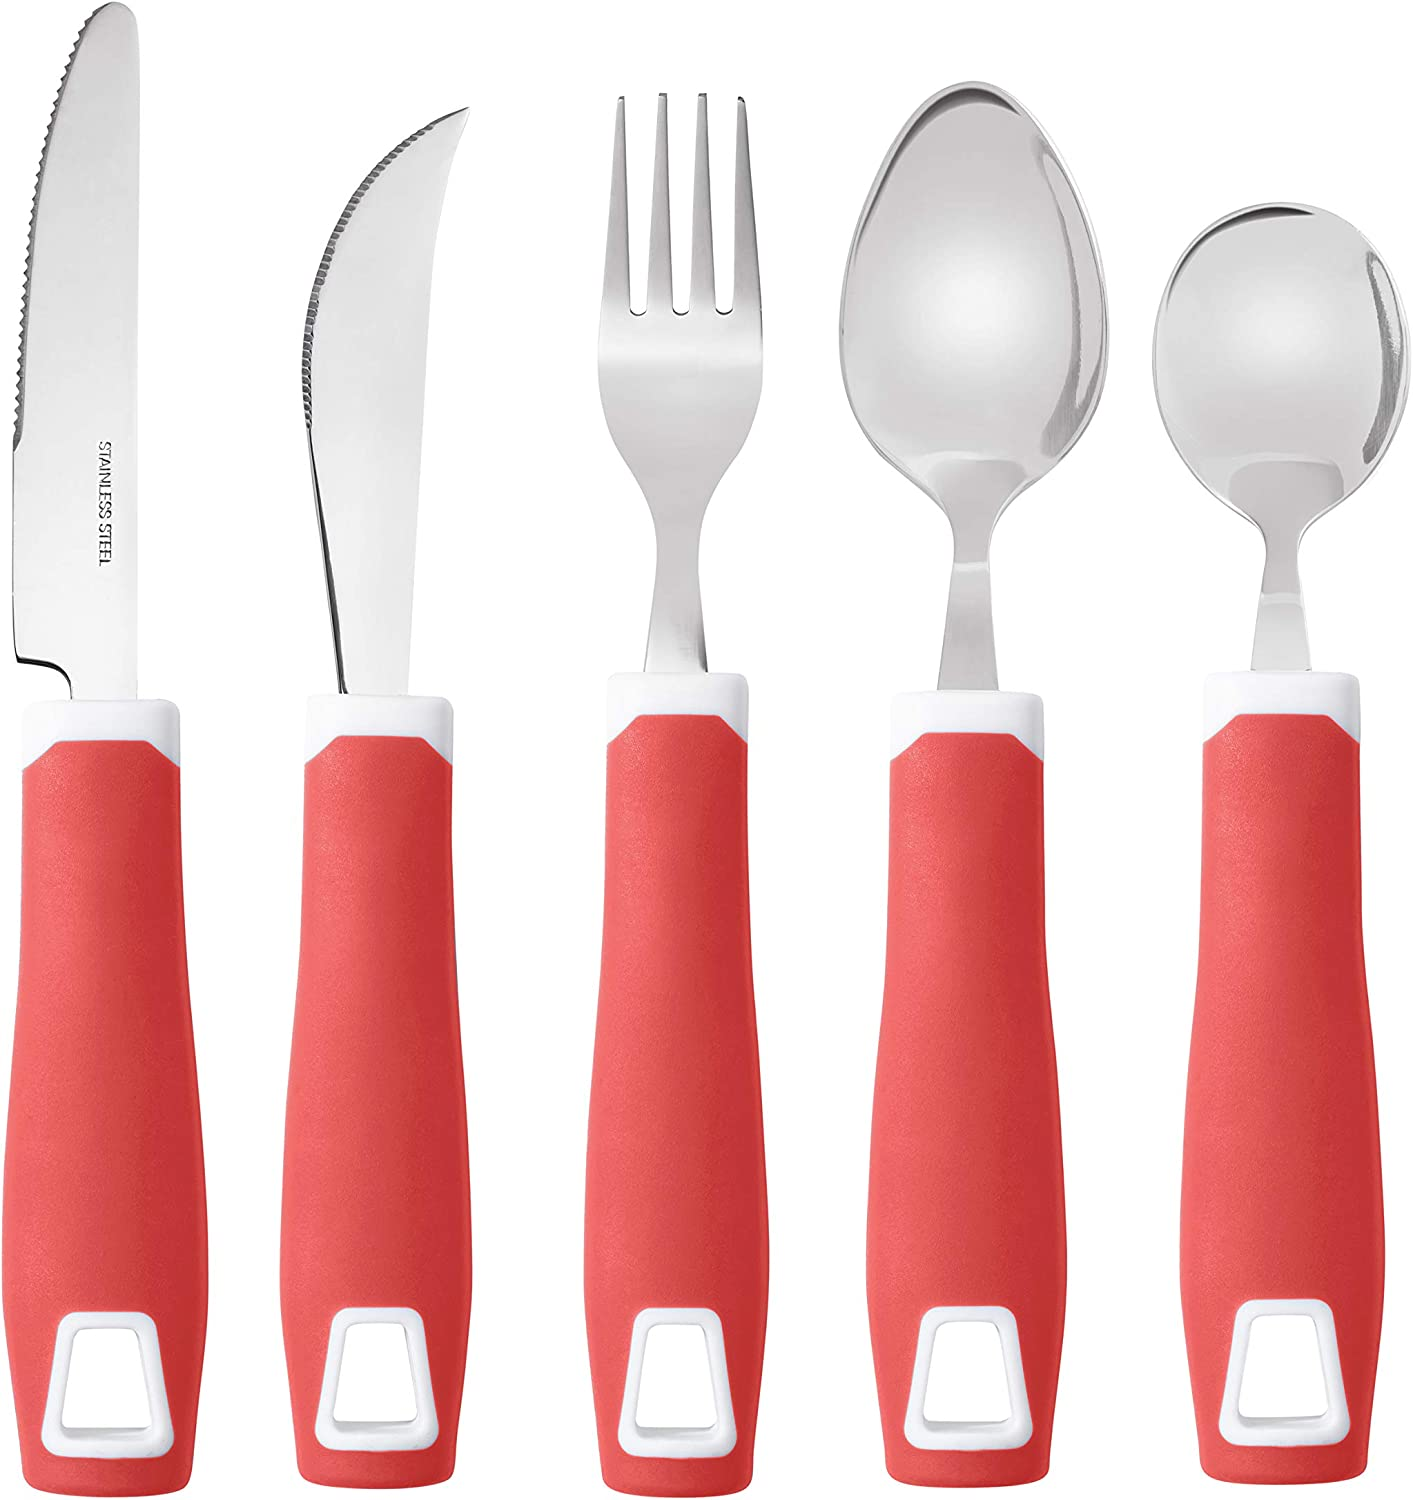 Adaptive Utensils (5-Piece Kitchen Set) Wide, Non-Weighted, Non-Slip Handles for Hand Tremors, Arthritis, Parkinson's or Elderly Use - Stainless Steel Knife, Rocker Knife, Fork, Spoons - Red